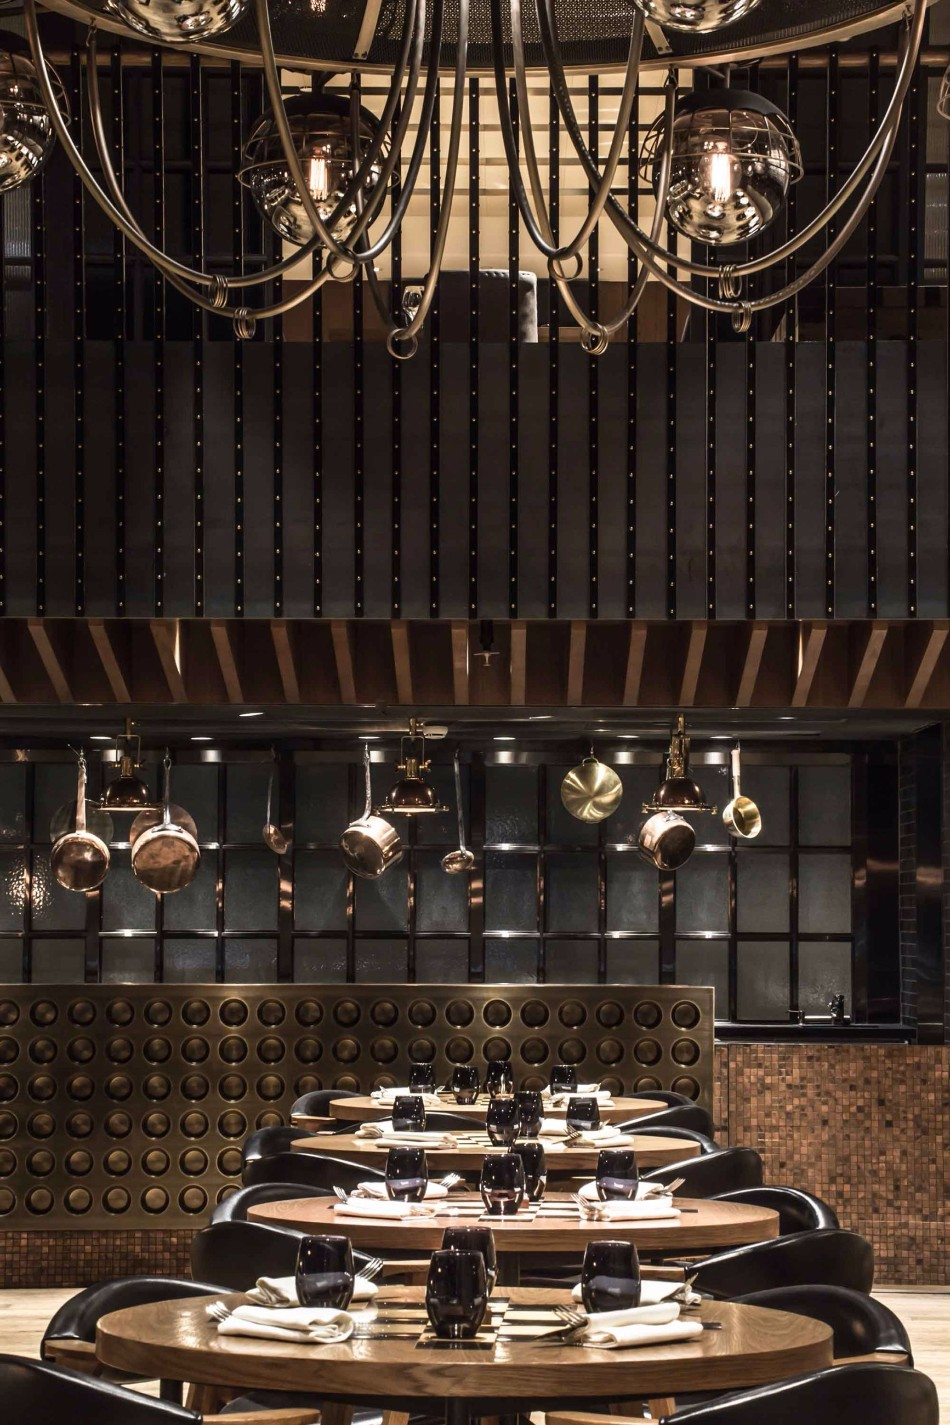 Luxury Dining Areas By Joyce Wang | www.bocadolobo.com #moderndiningtables #diningtables #diningroom #thediningroom #diningarea #diningareadesign #roomdesign #exclusivedesign #interiordesign #topinteriordesigners #famousinteriordesigners #bestinteriordesigners #luxurydiningroom #thediningroom #luxuryrestaurants #restaurants @moderndiningtables